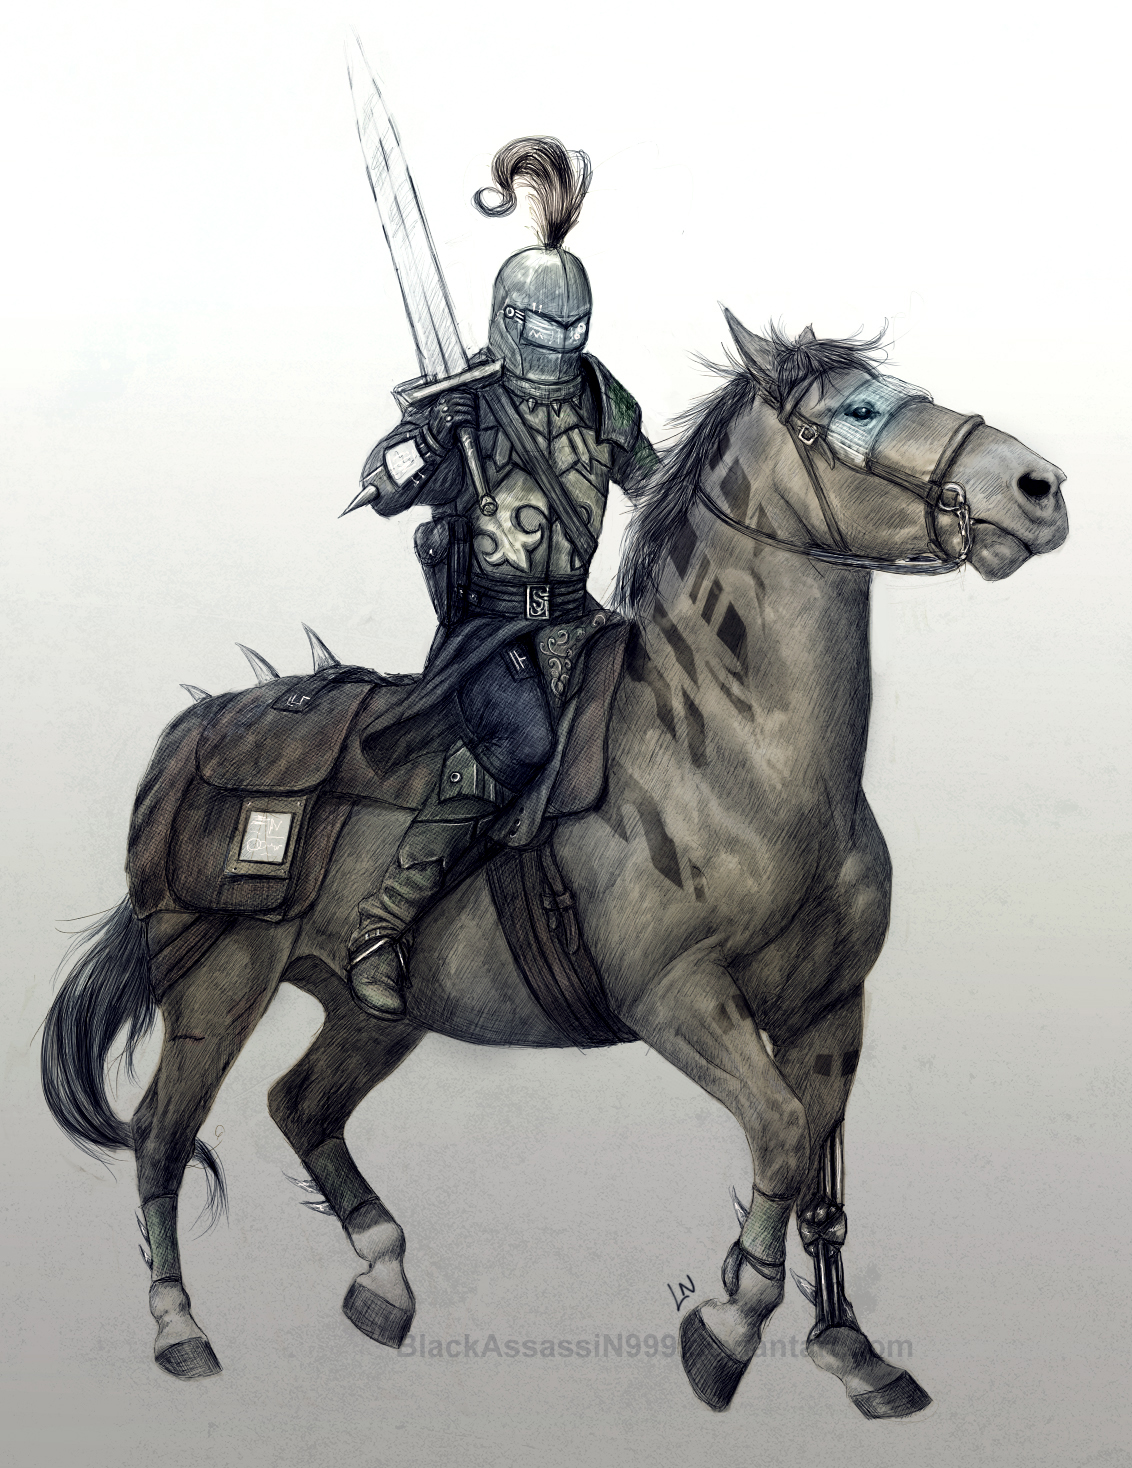 Medieval Knight On Horse Displaying images for.